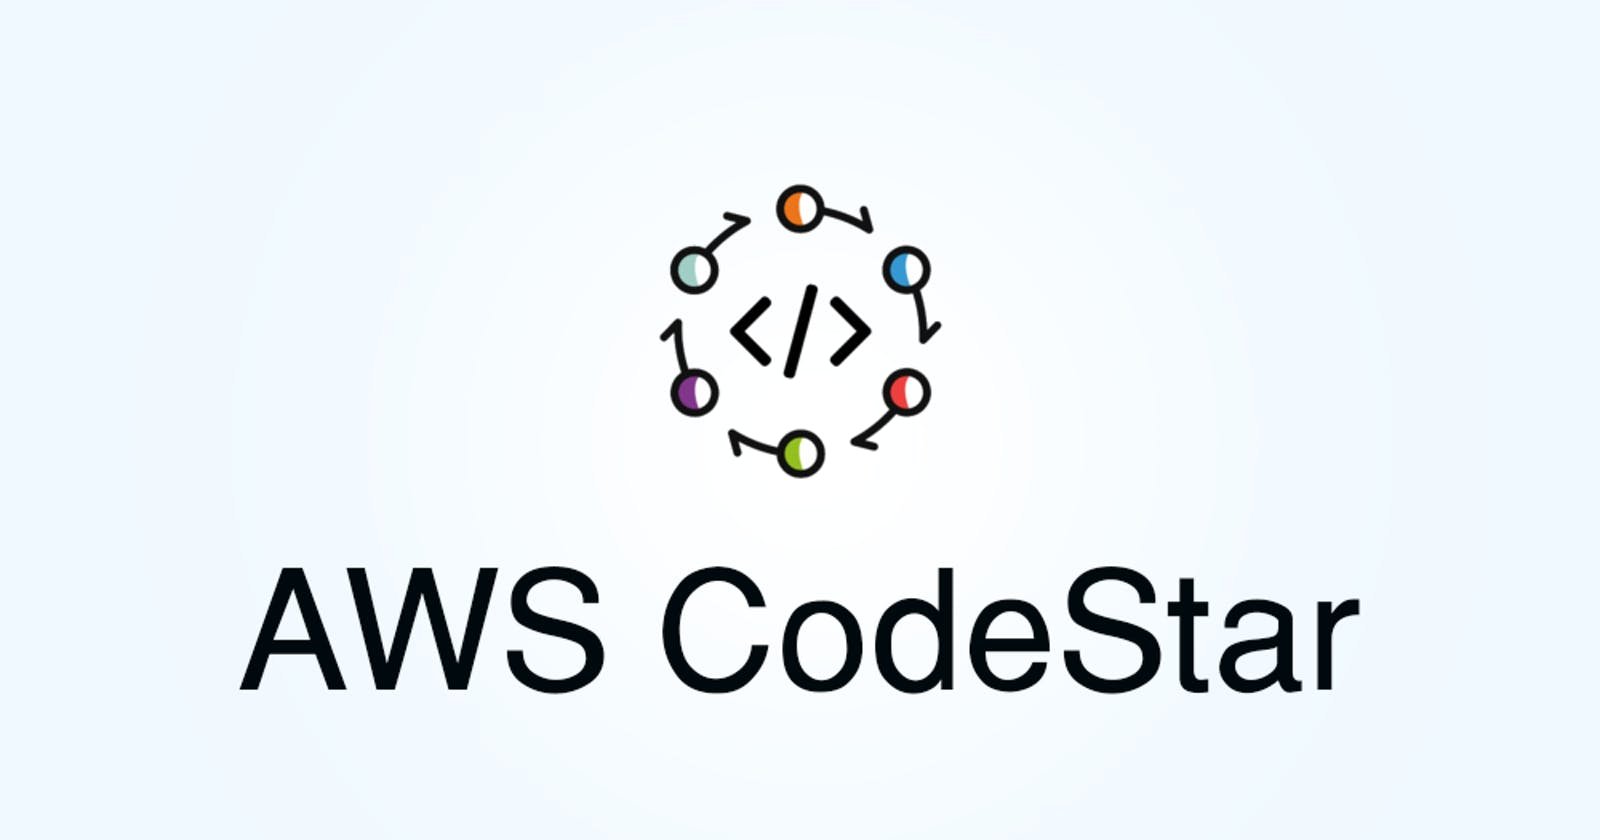 How to deploy your application with AWS CodeStar